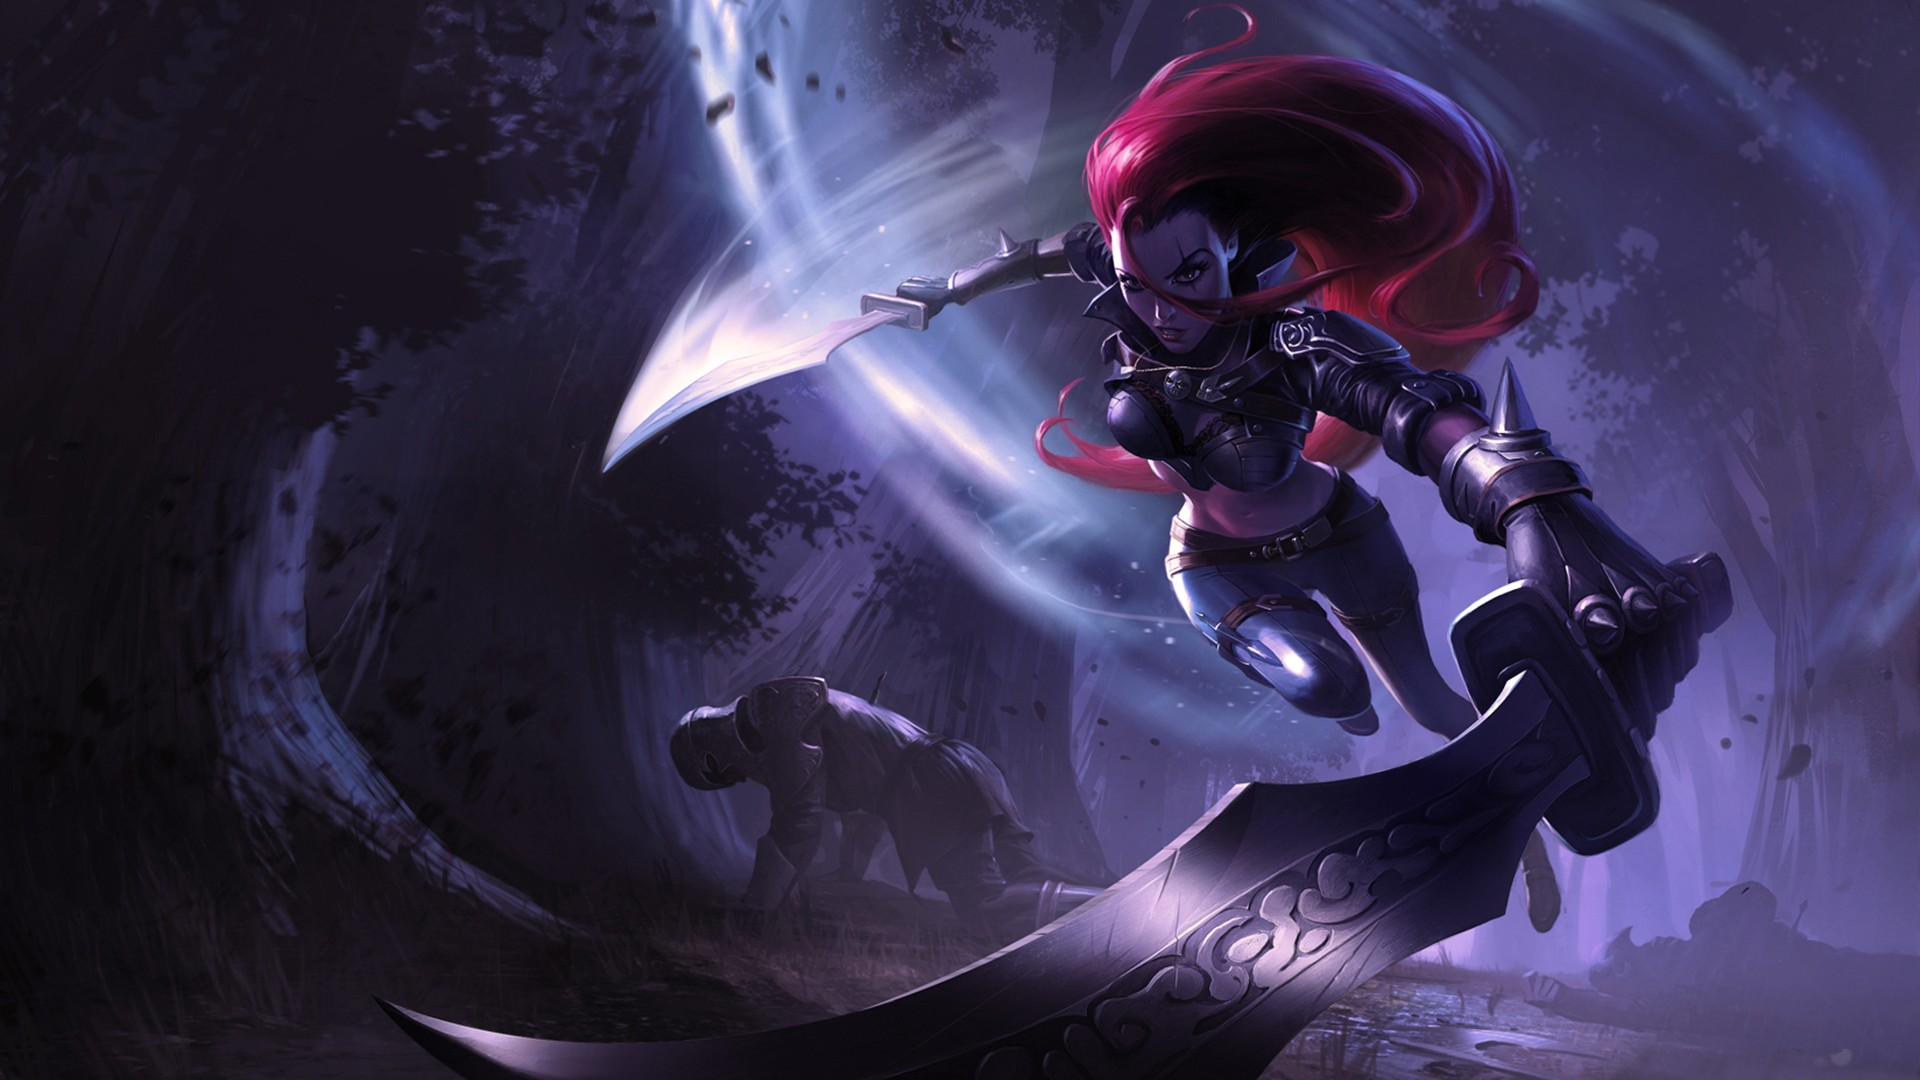 Kitty cat katarina league of legends - 2 8